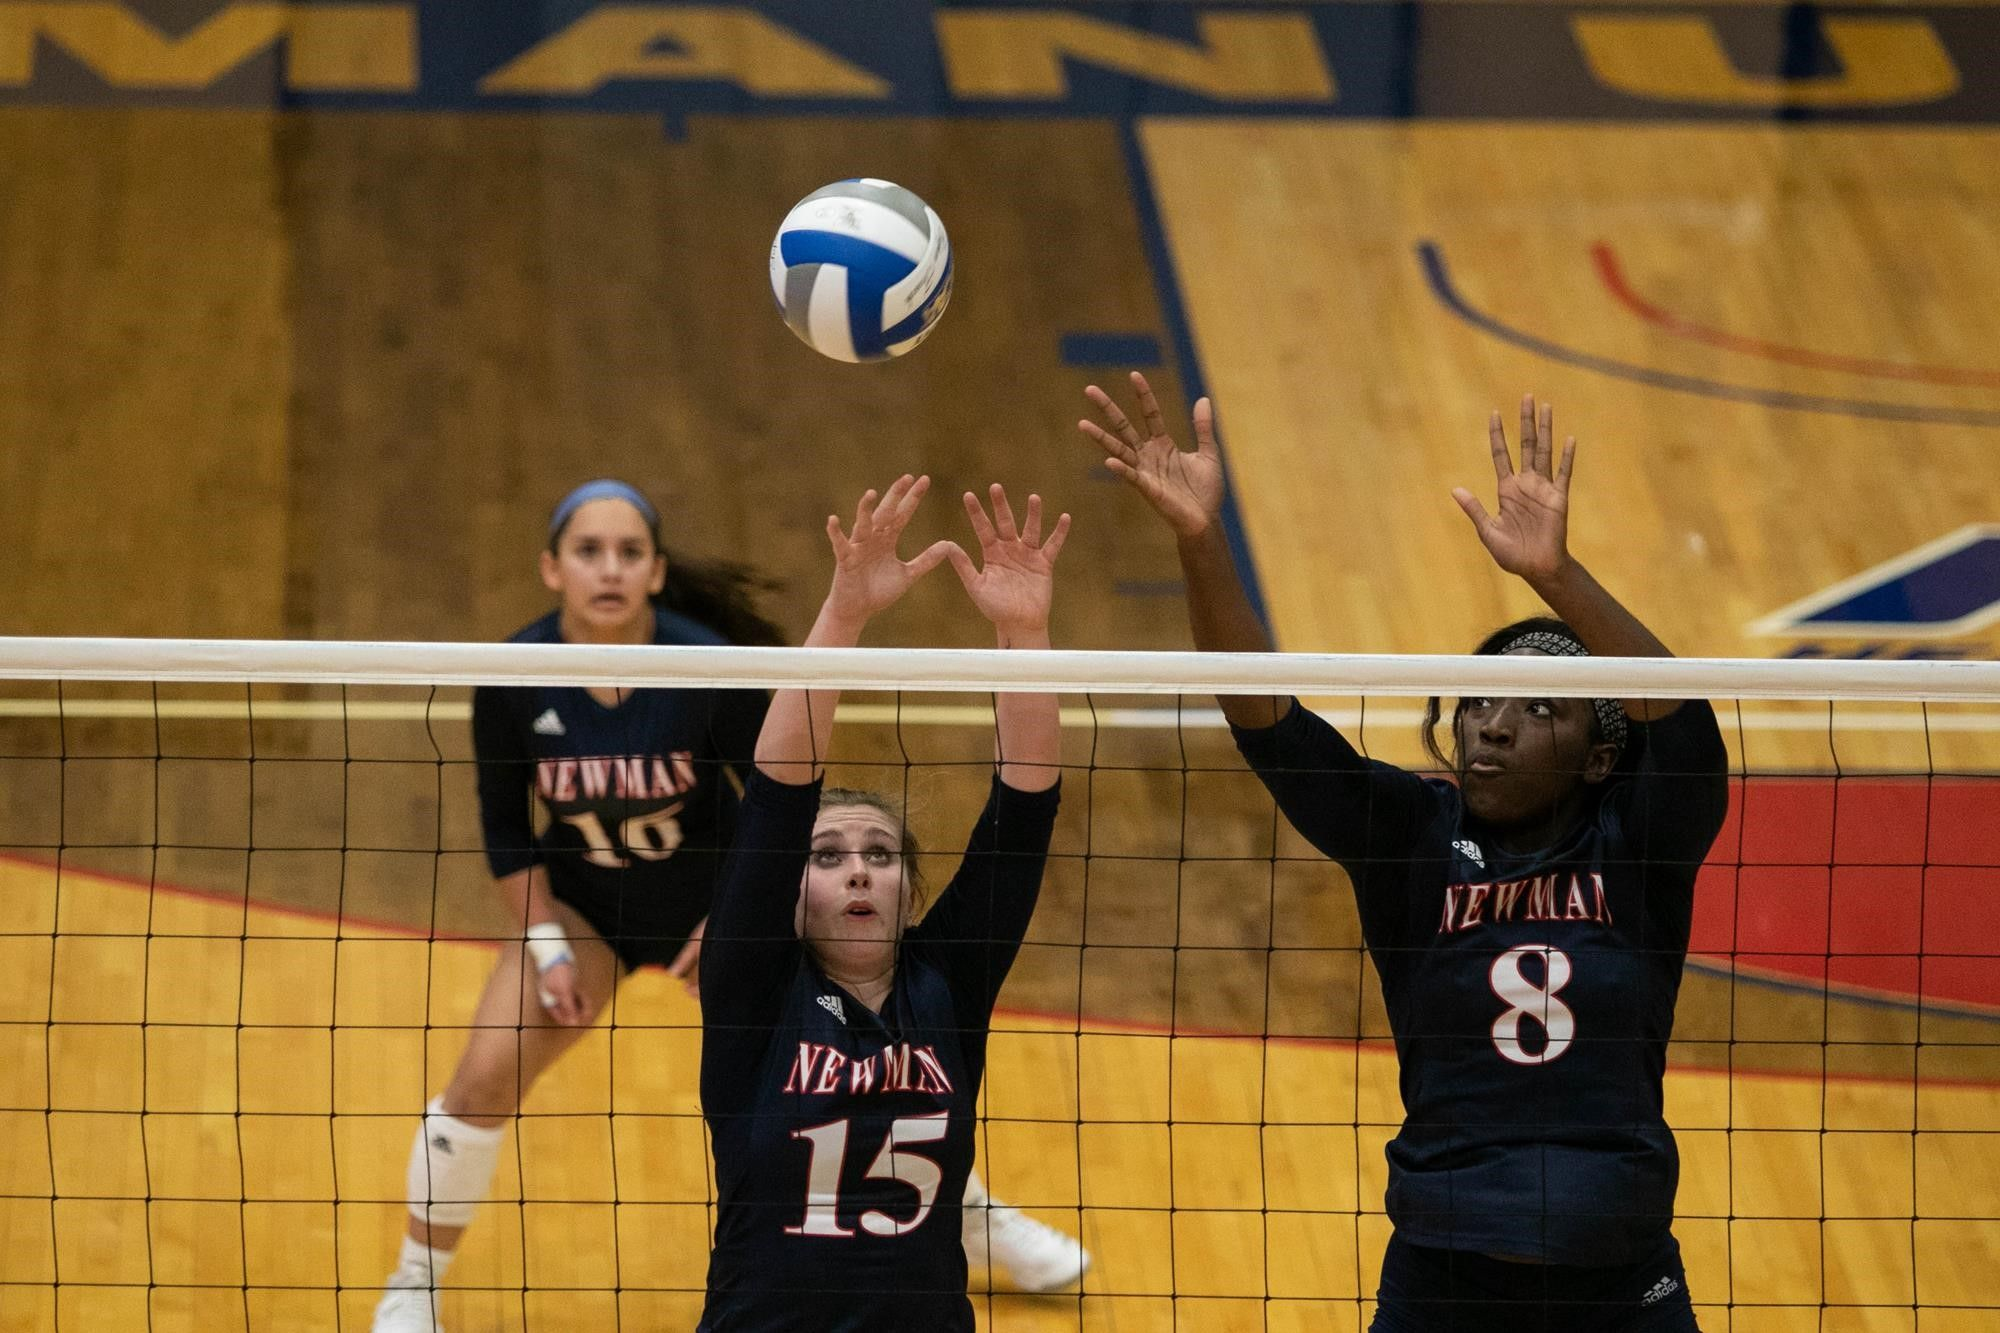 Newman volleyball struggles to take off